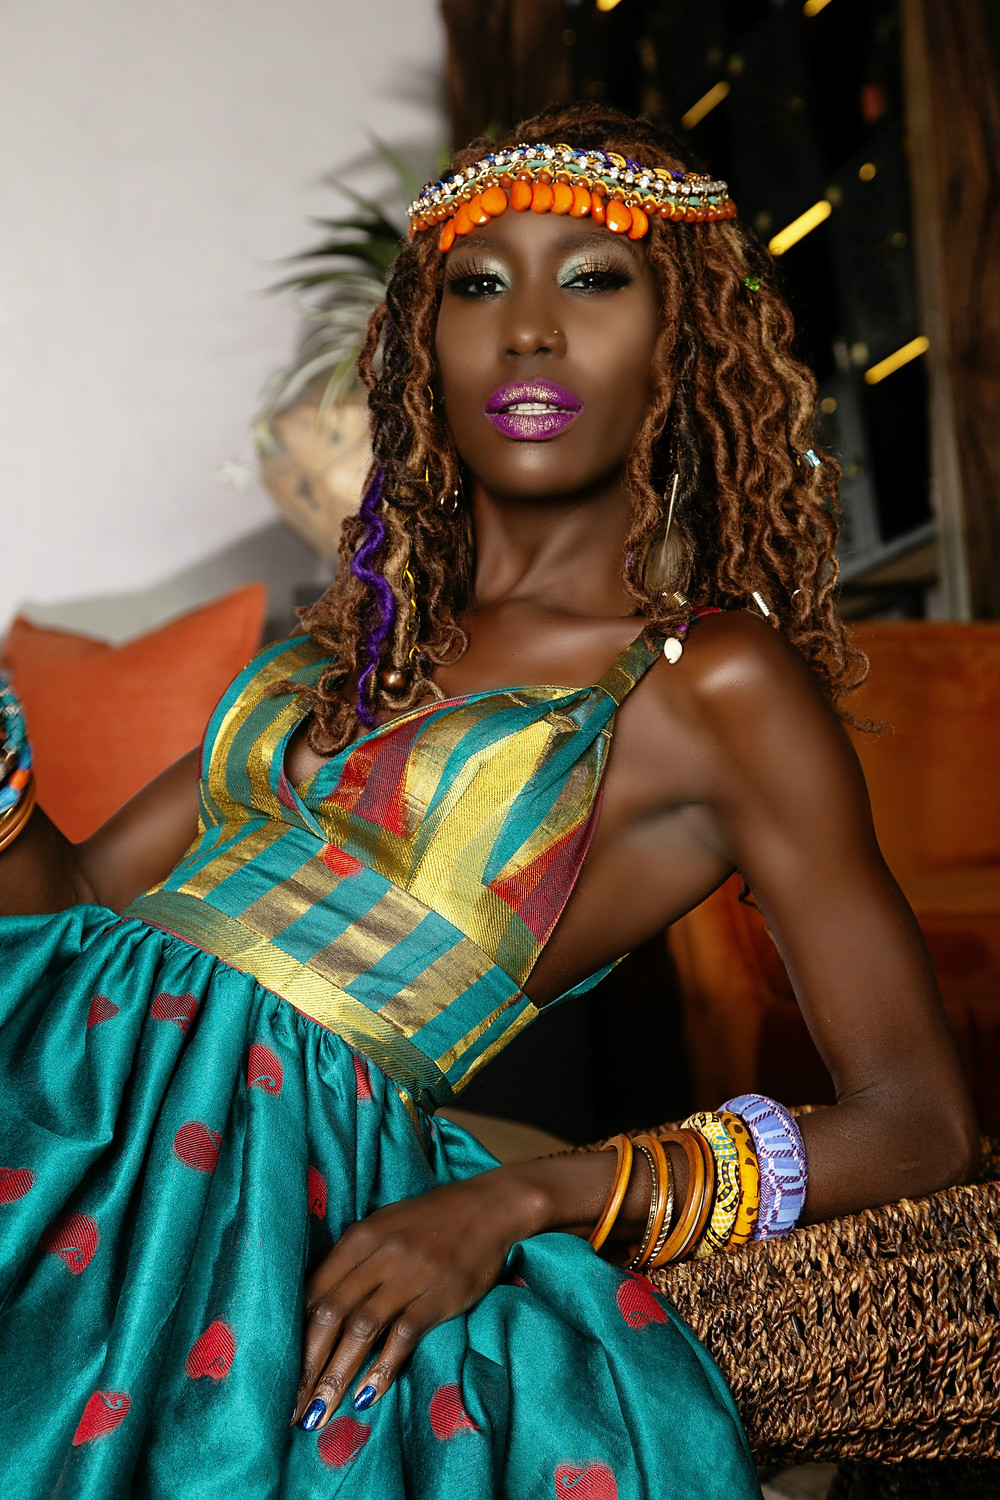 Liz Ogumbo Fashion | Models: Liz Ogumbo | Make-up: Zakiyya Bham | Epicure Restaurant Cigar Lounge